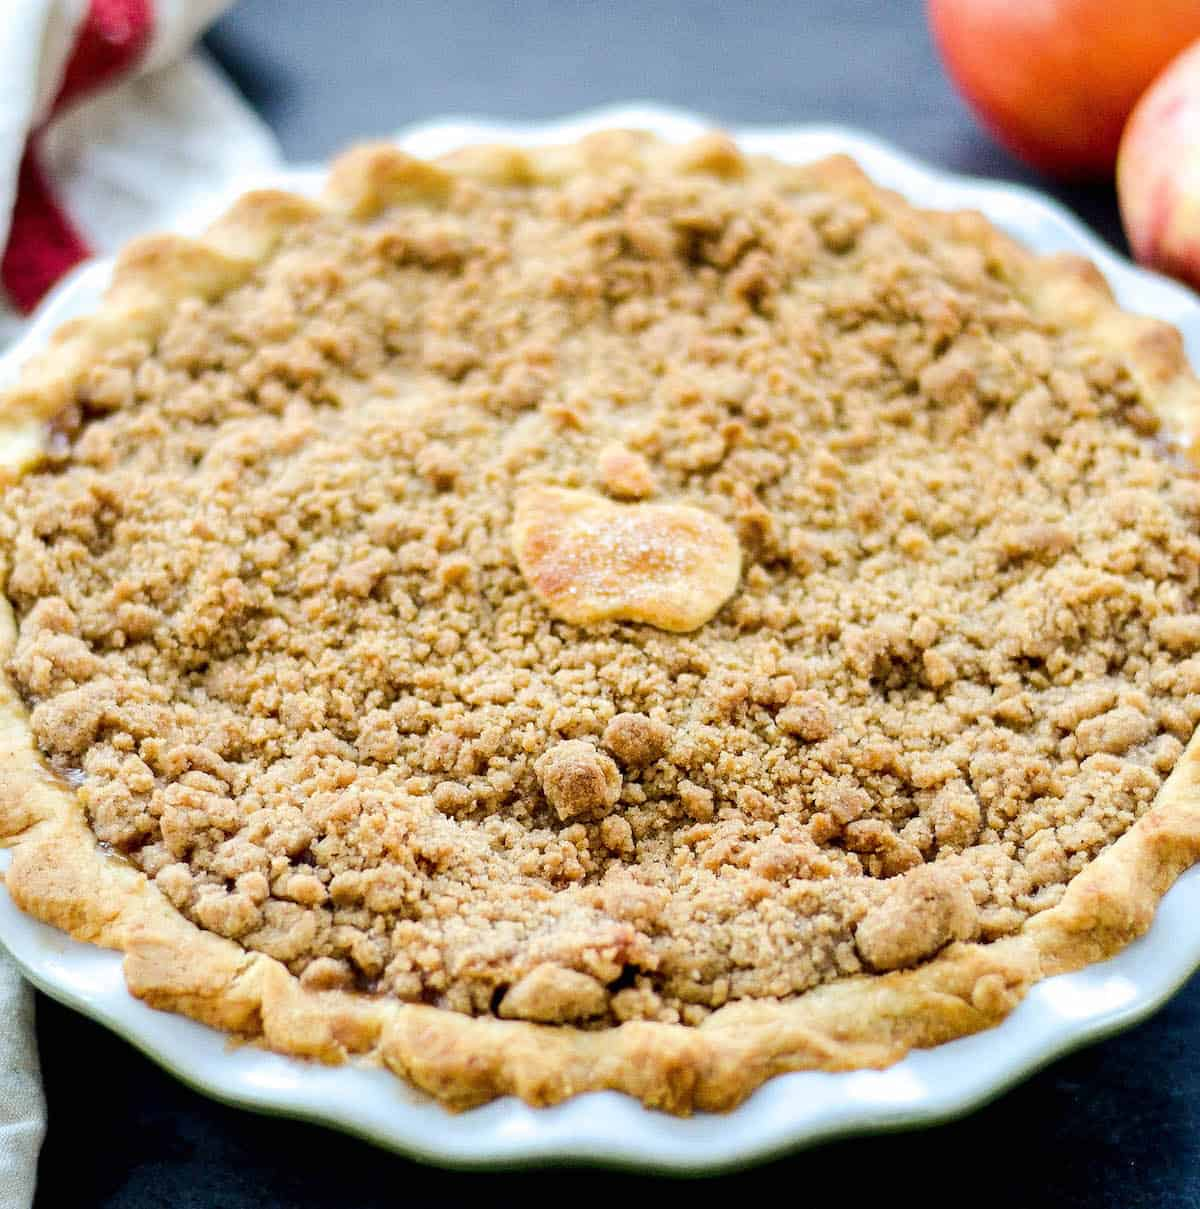 Front view of homemade apple crumble pie.